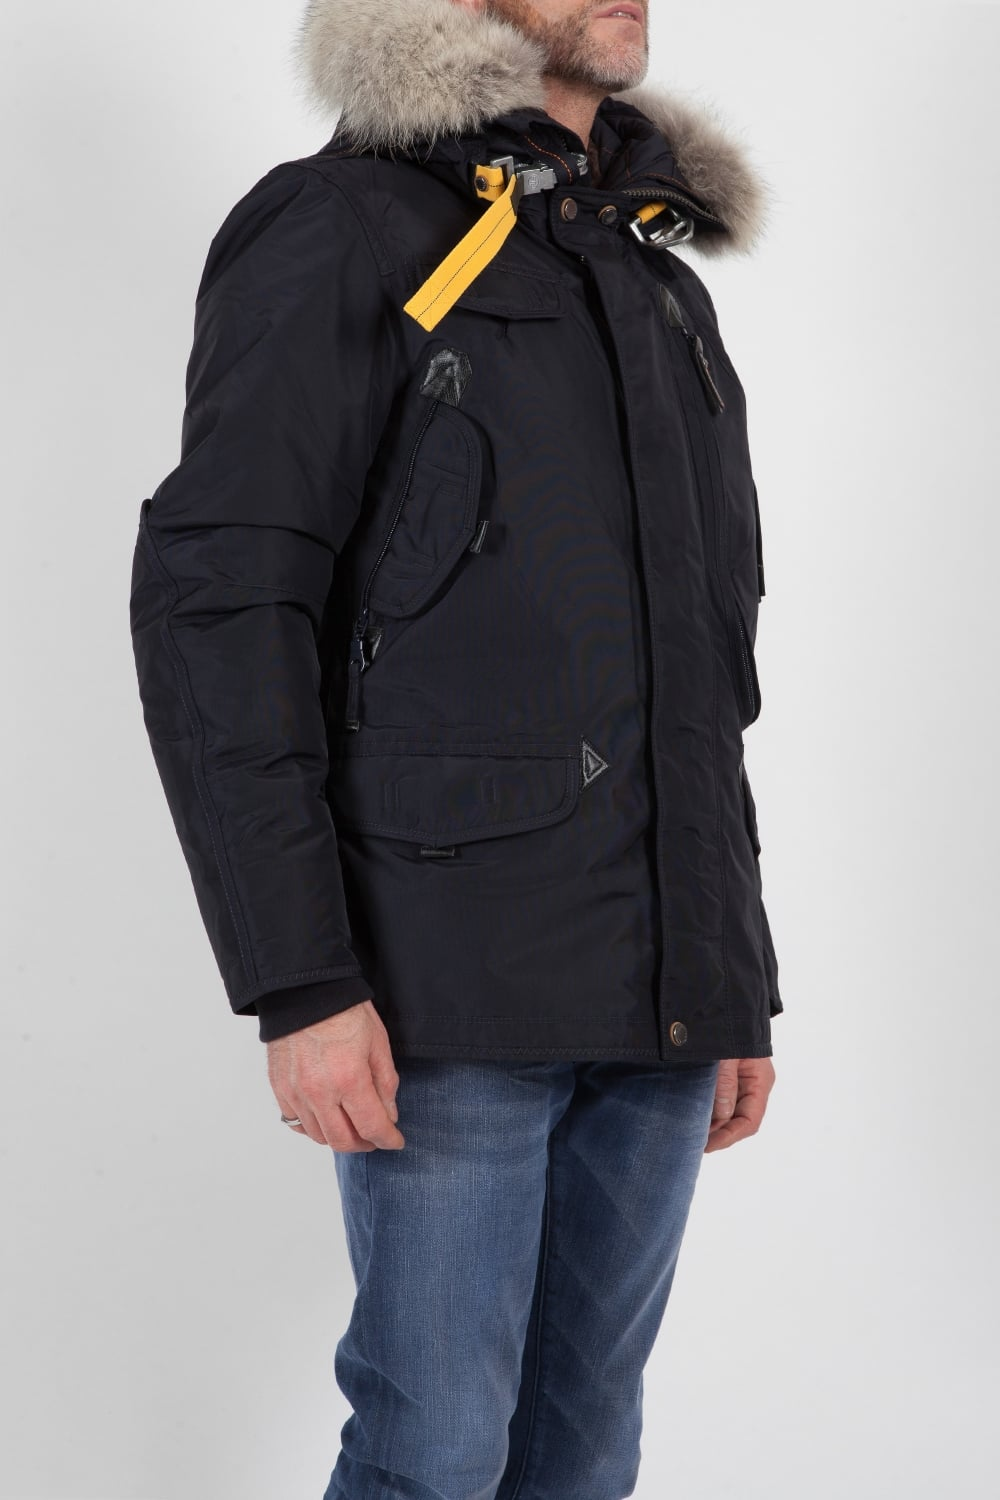 parajumpers right hand test